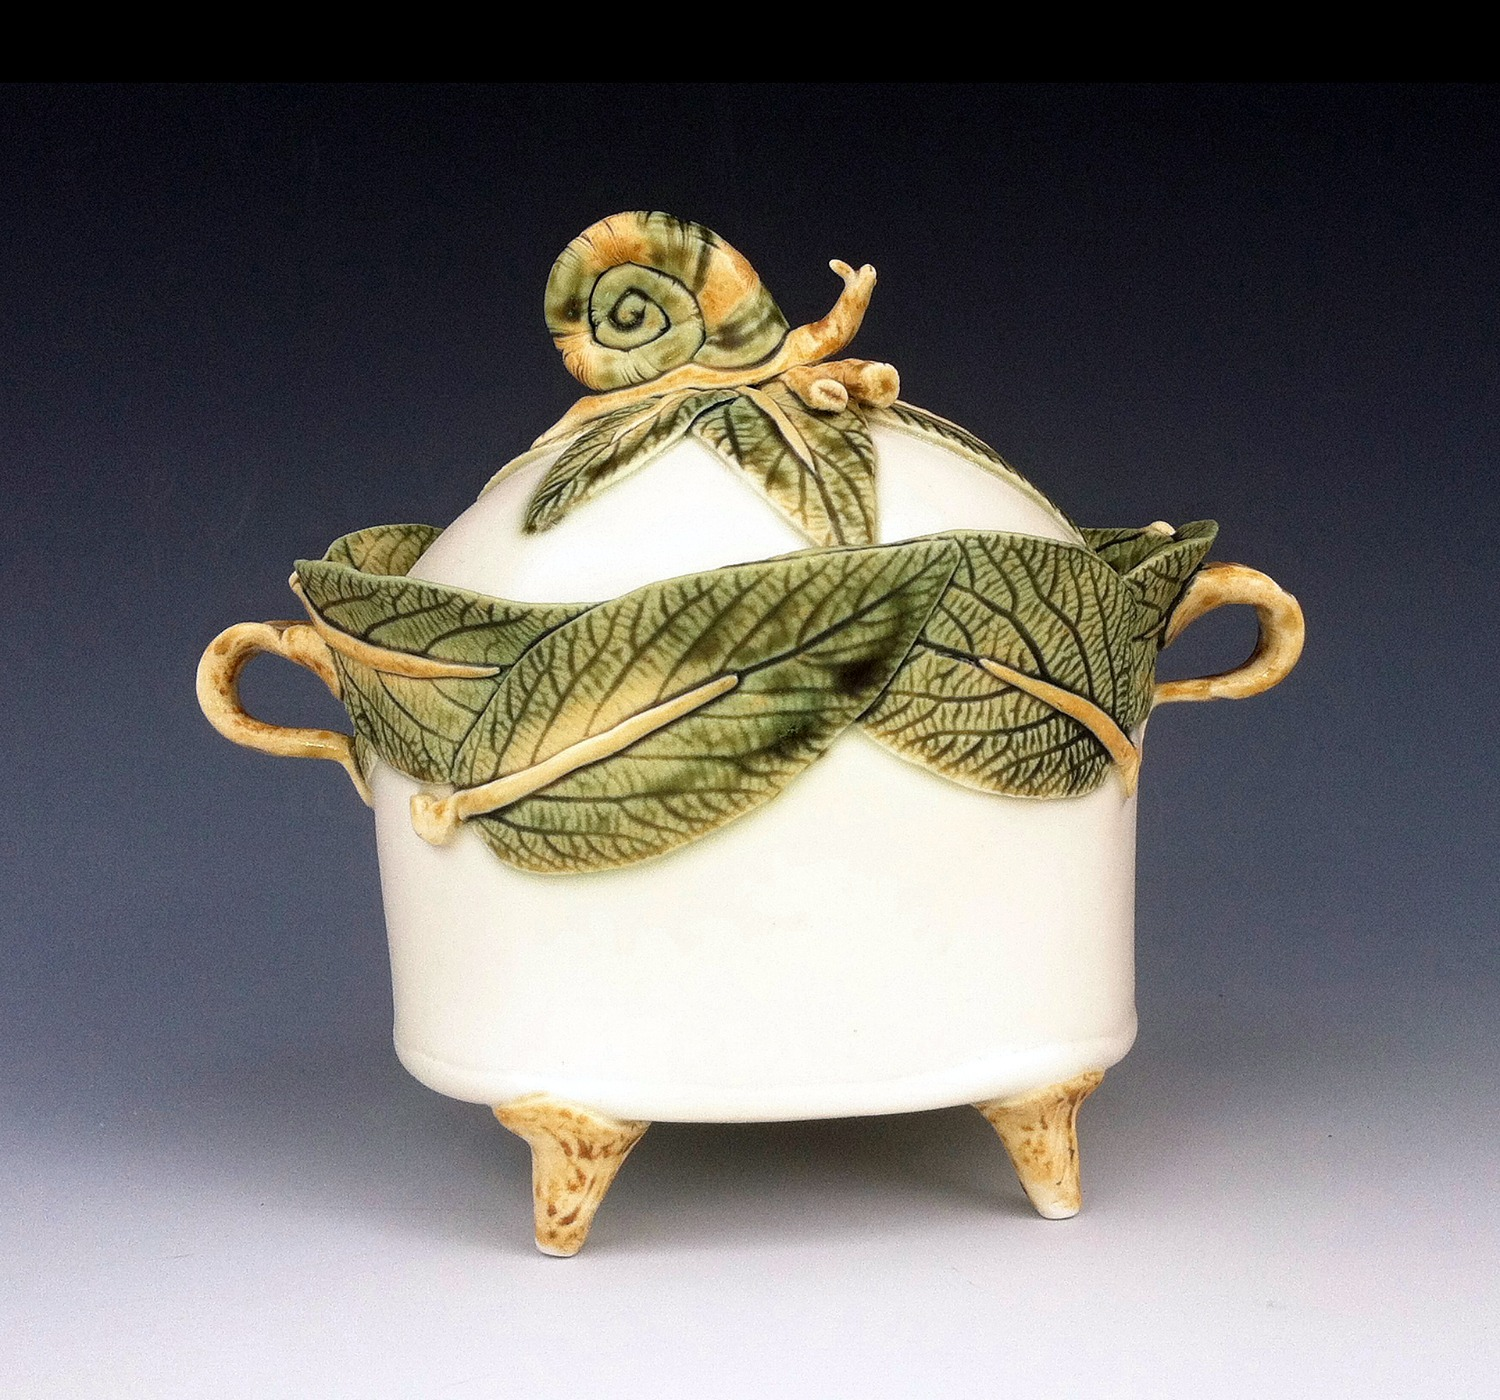 Lynn Fisher, Ceramics